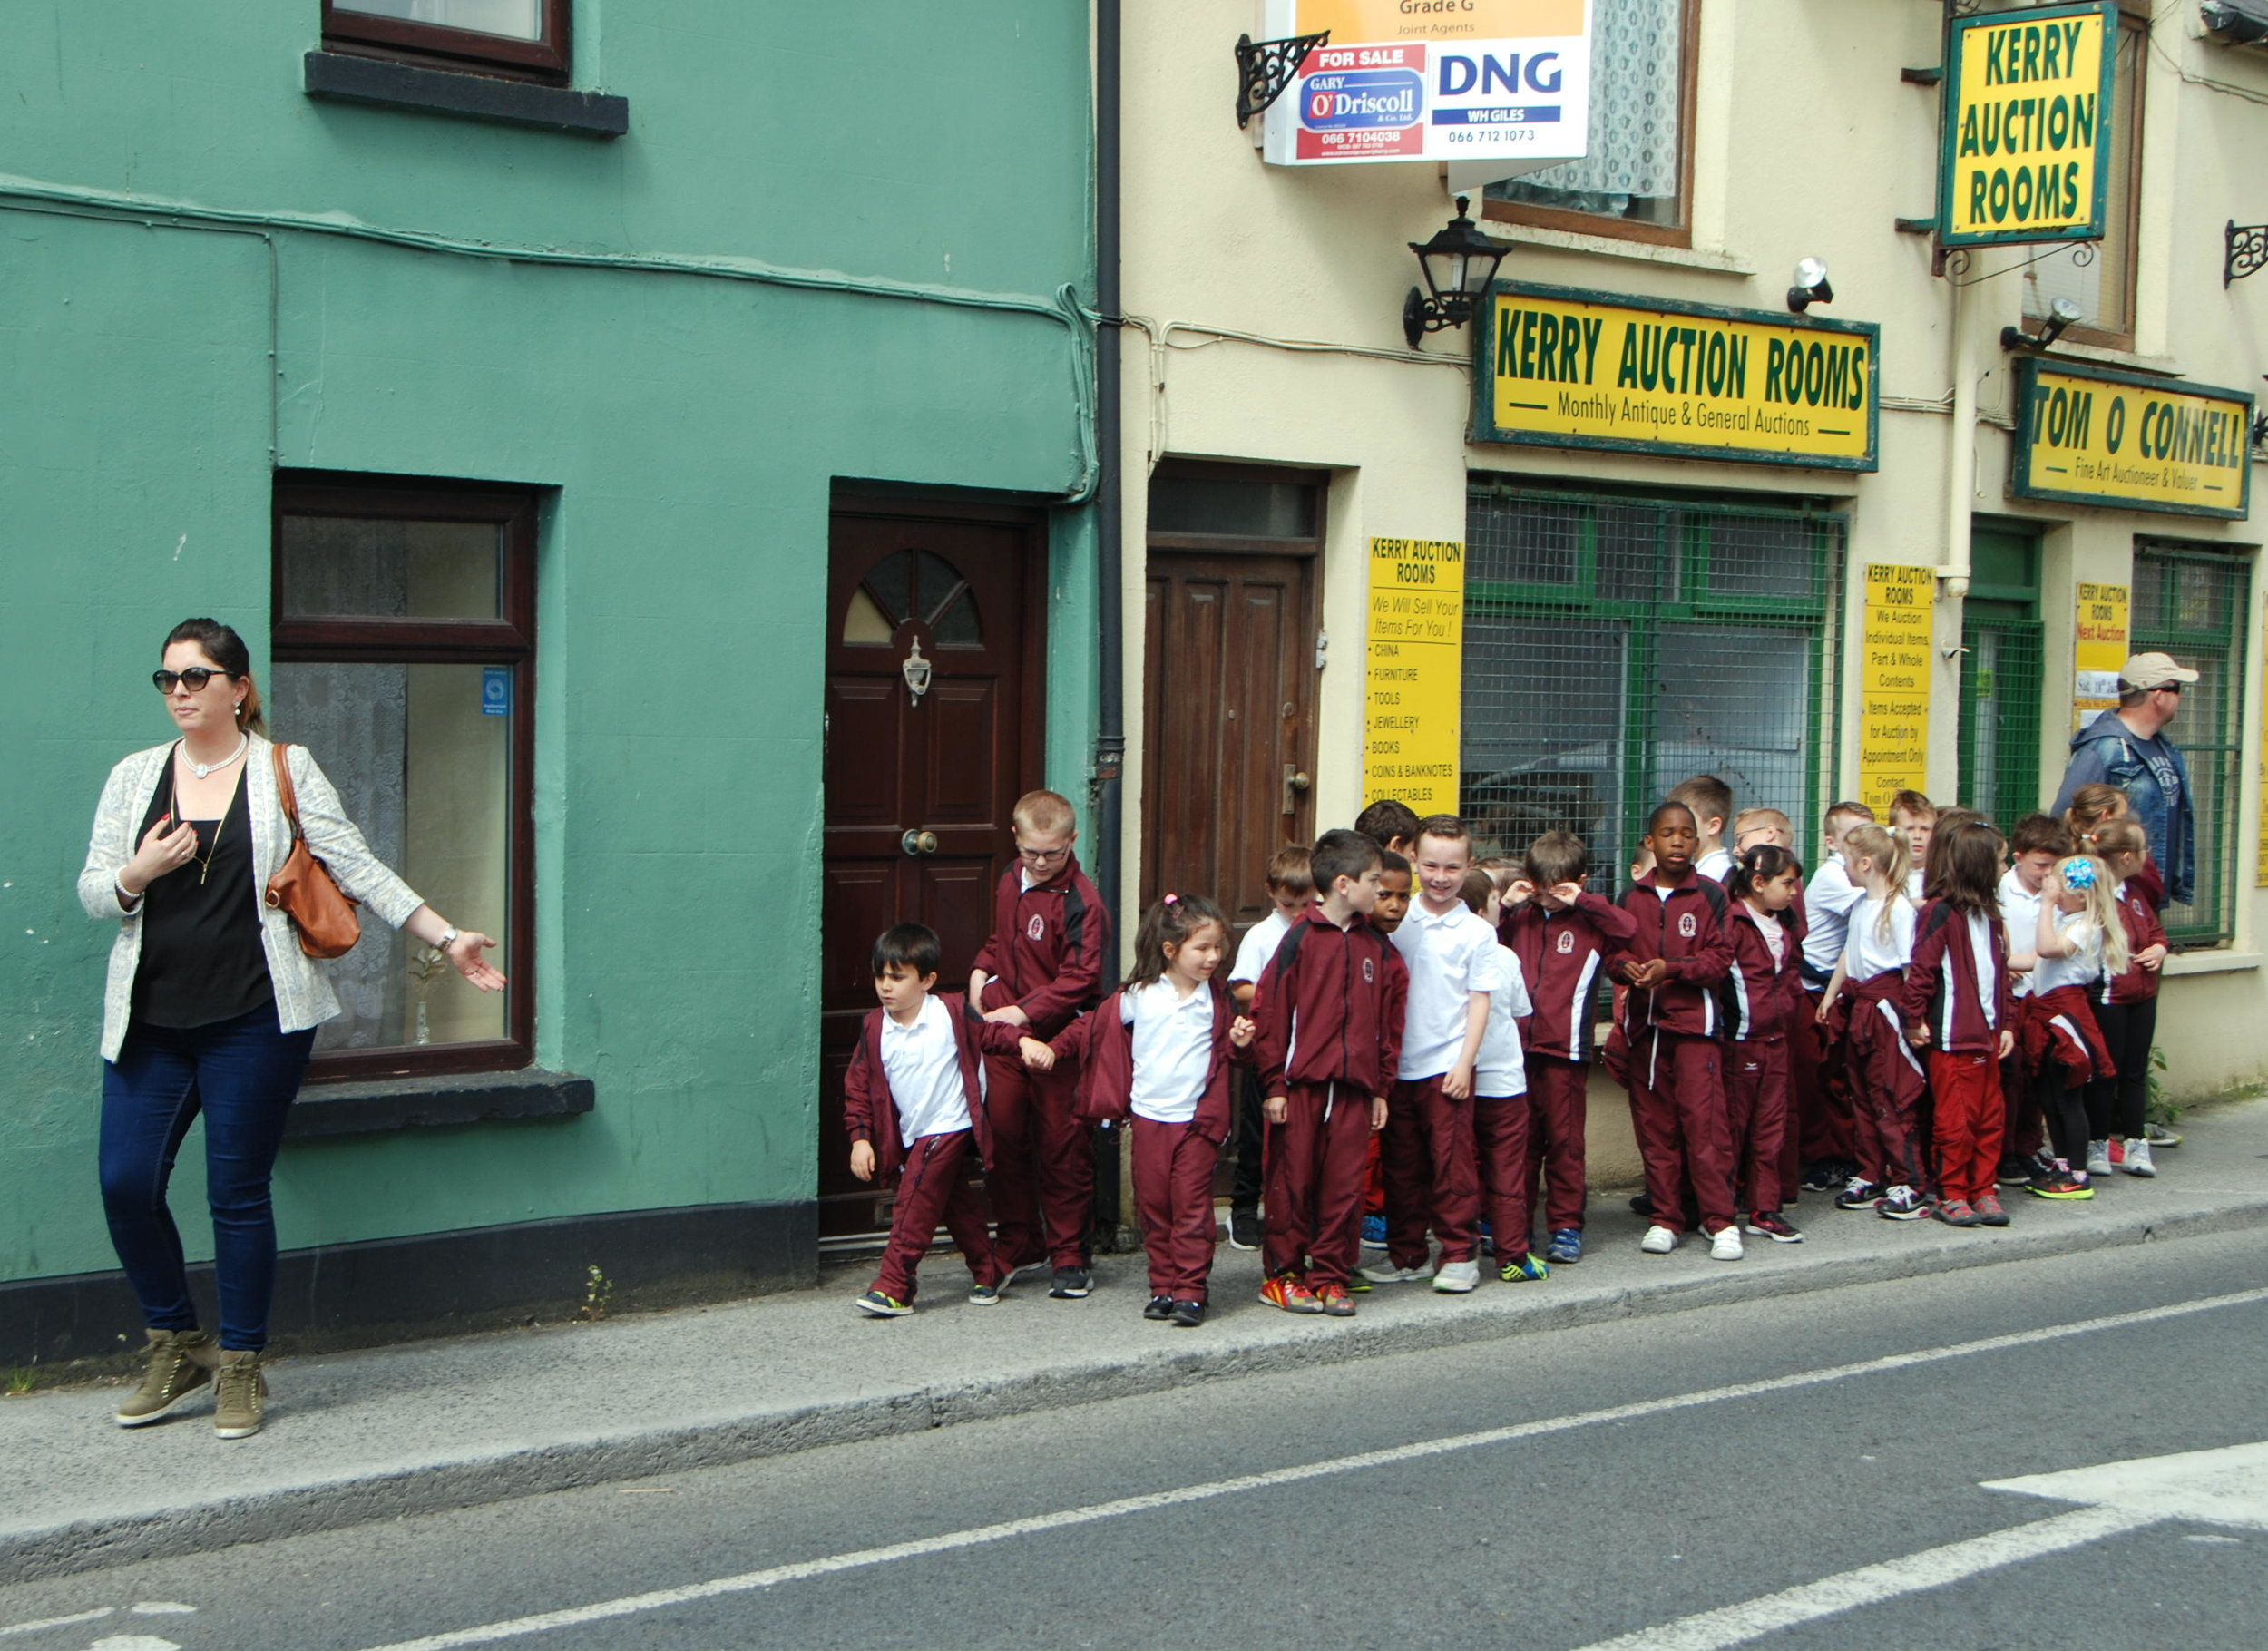 Children on a school outing in Tralee, Ireland. School is state funded with the exception of books and uniforms. Most primary schools are privately owned by religious organizations but state funded.